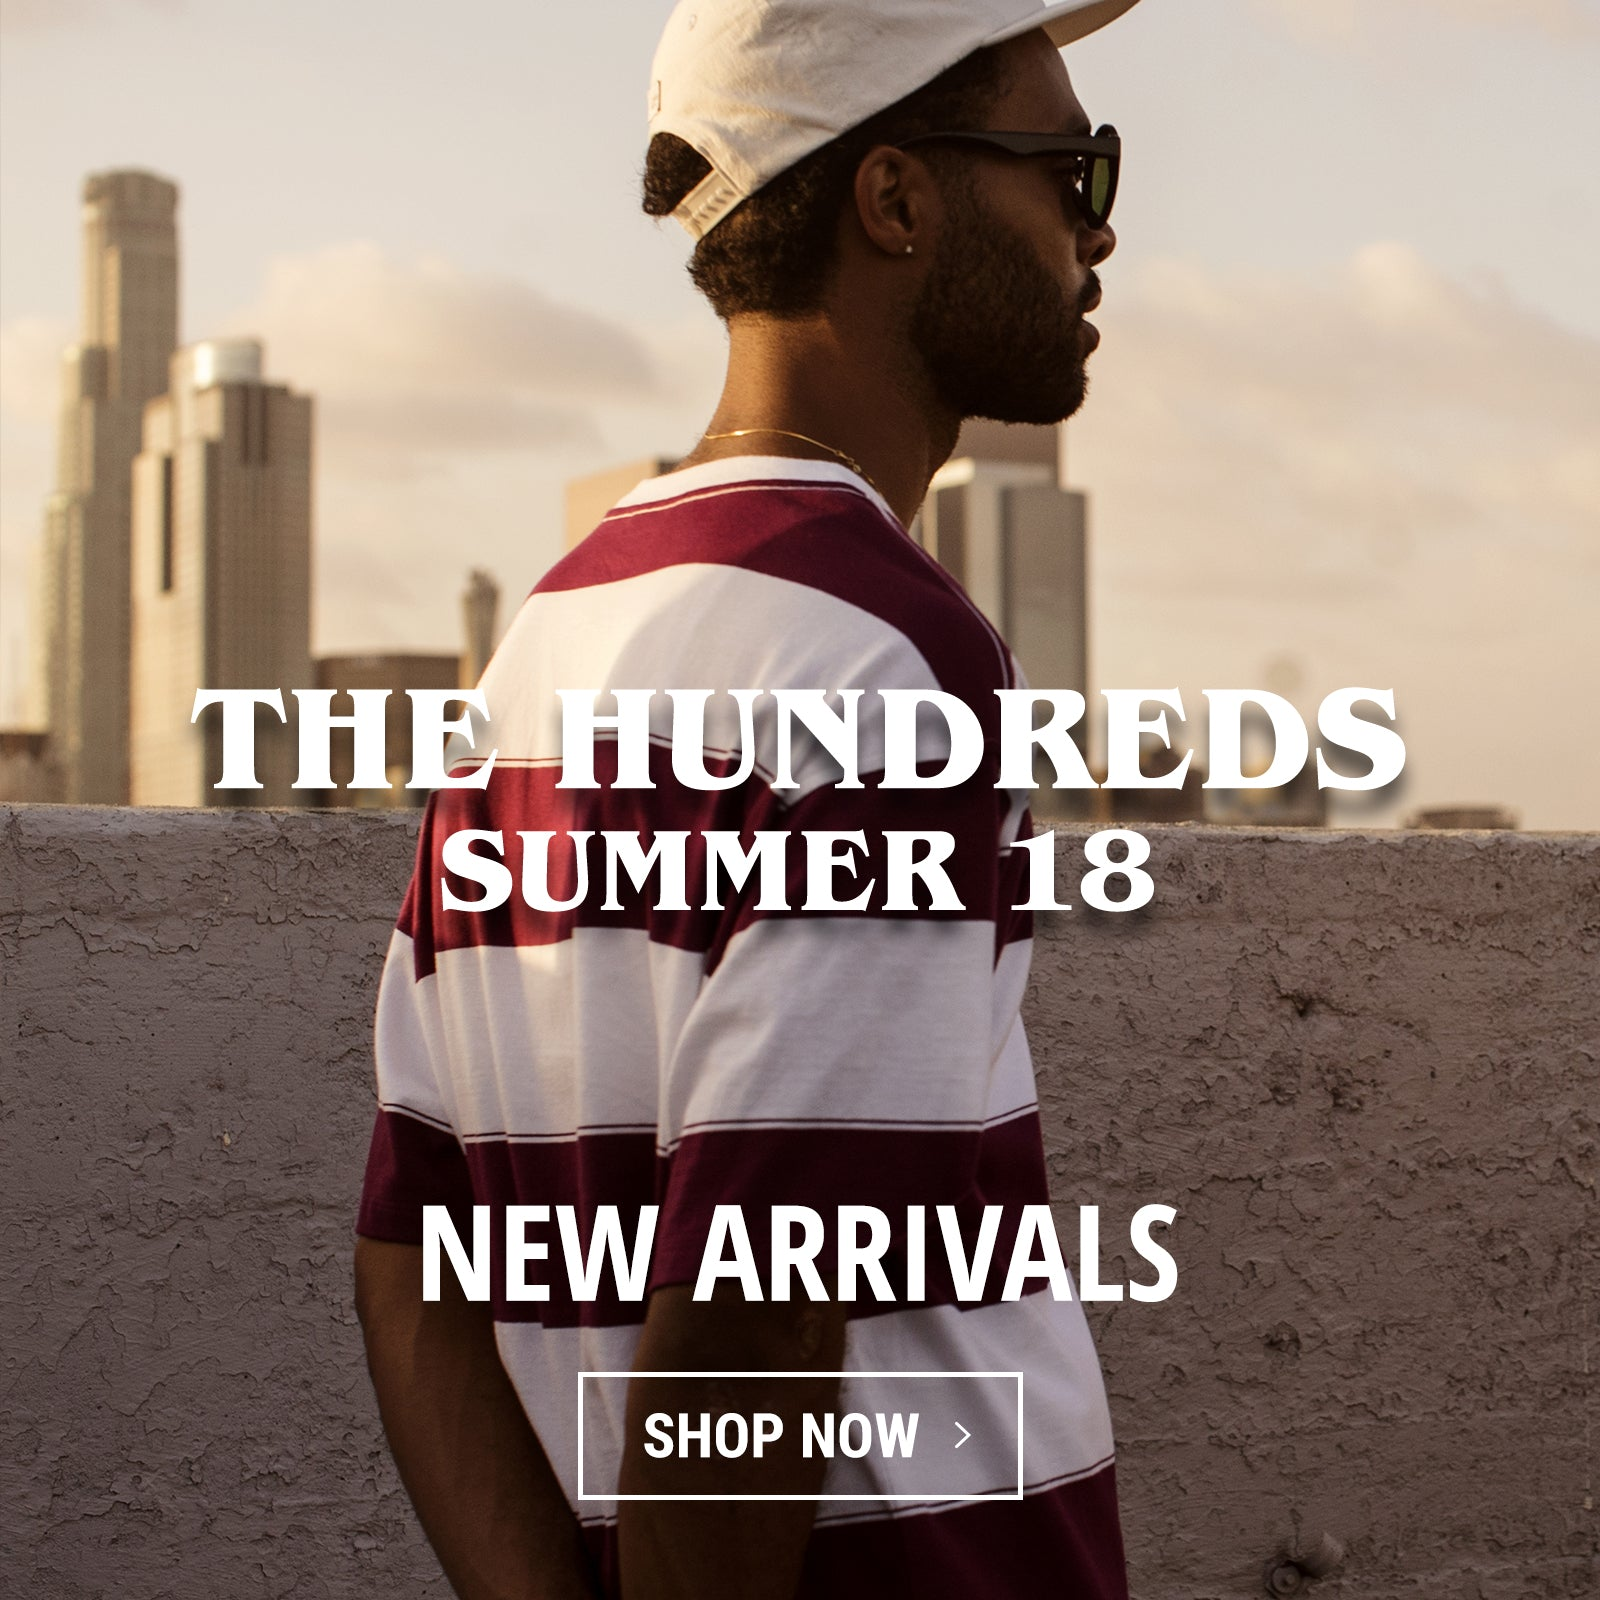 THE HUNDREDS SUMMER 2018